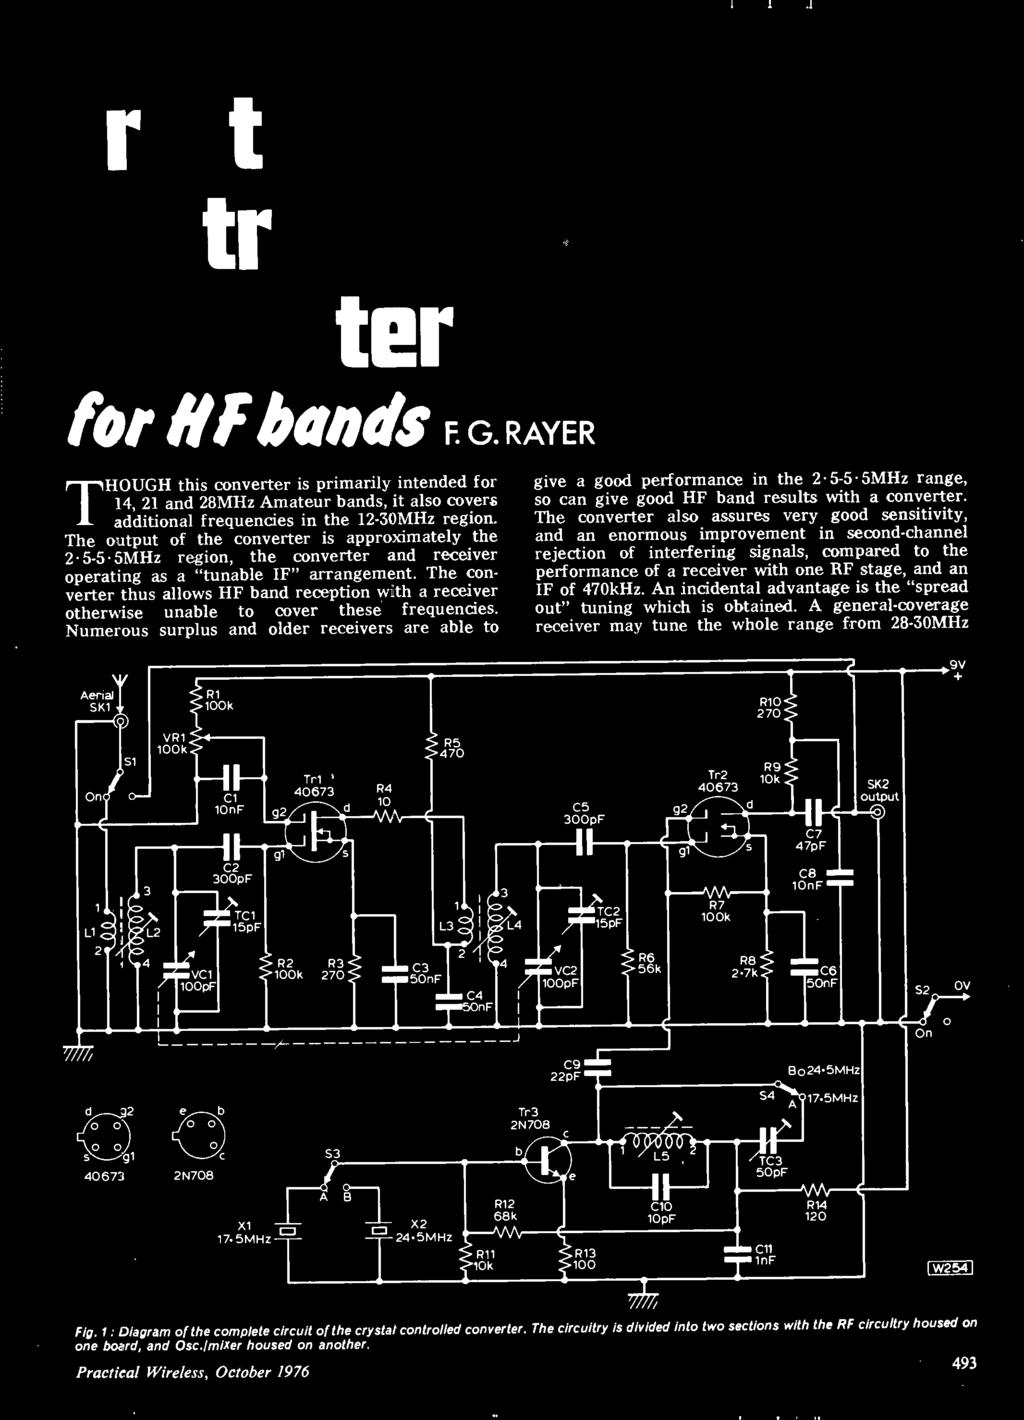 October 40p Project Sheetproject Heall 1rrim Electronics Fl Related Posts To Fuzz Box Schematics Central And Pcbs The Converter Thus Allows Hf Band Reception With A Receiver Otherwise Unable Cover These Frequencies